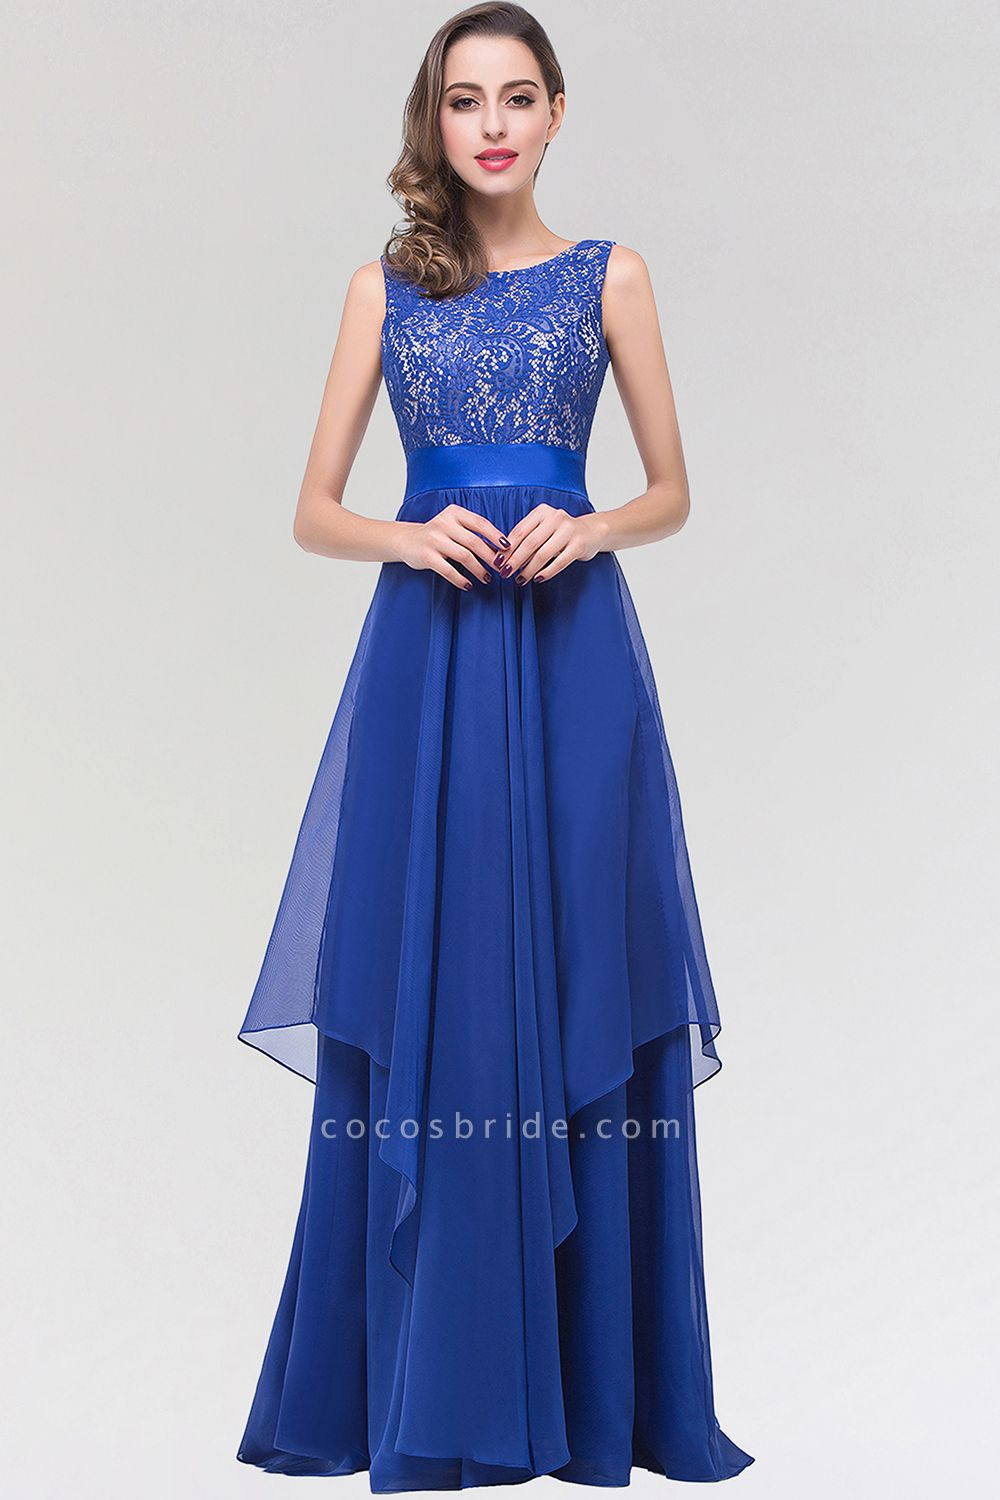 A-line Chiffon Lace Jewel Sleeveless Floor-length Bridesmaid Dresses